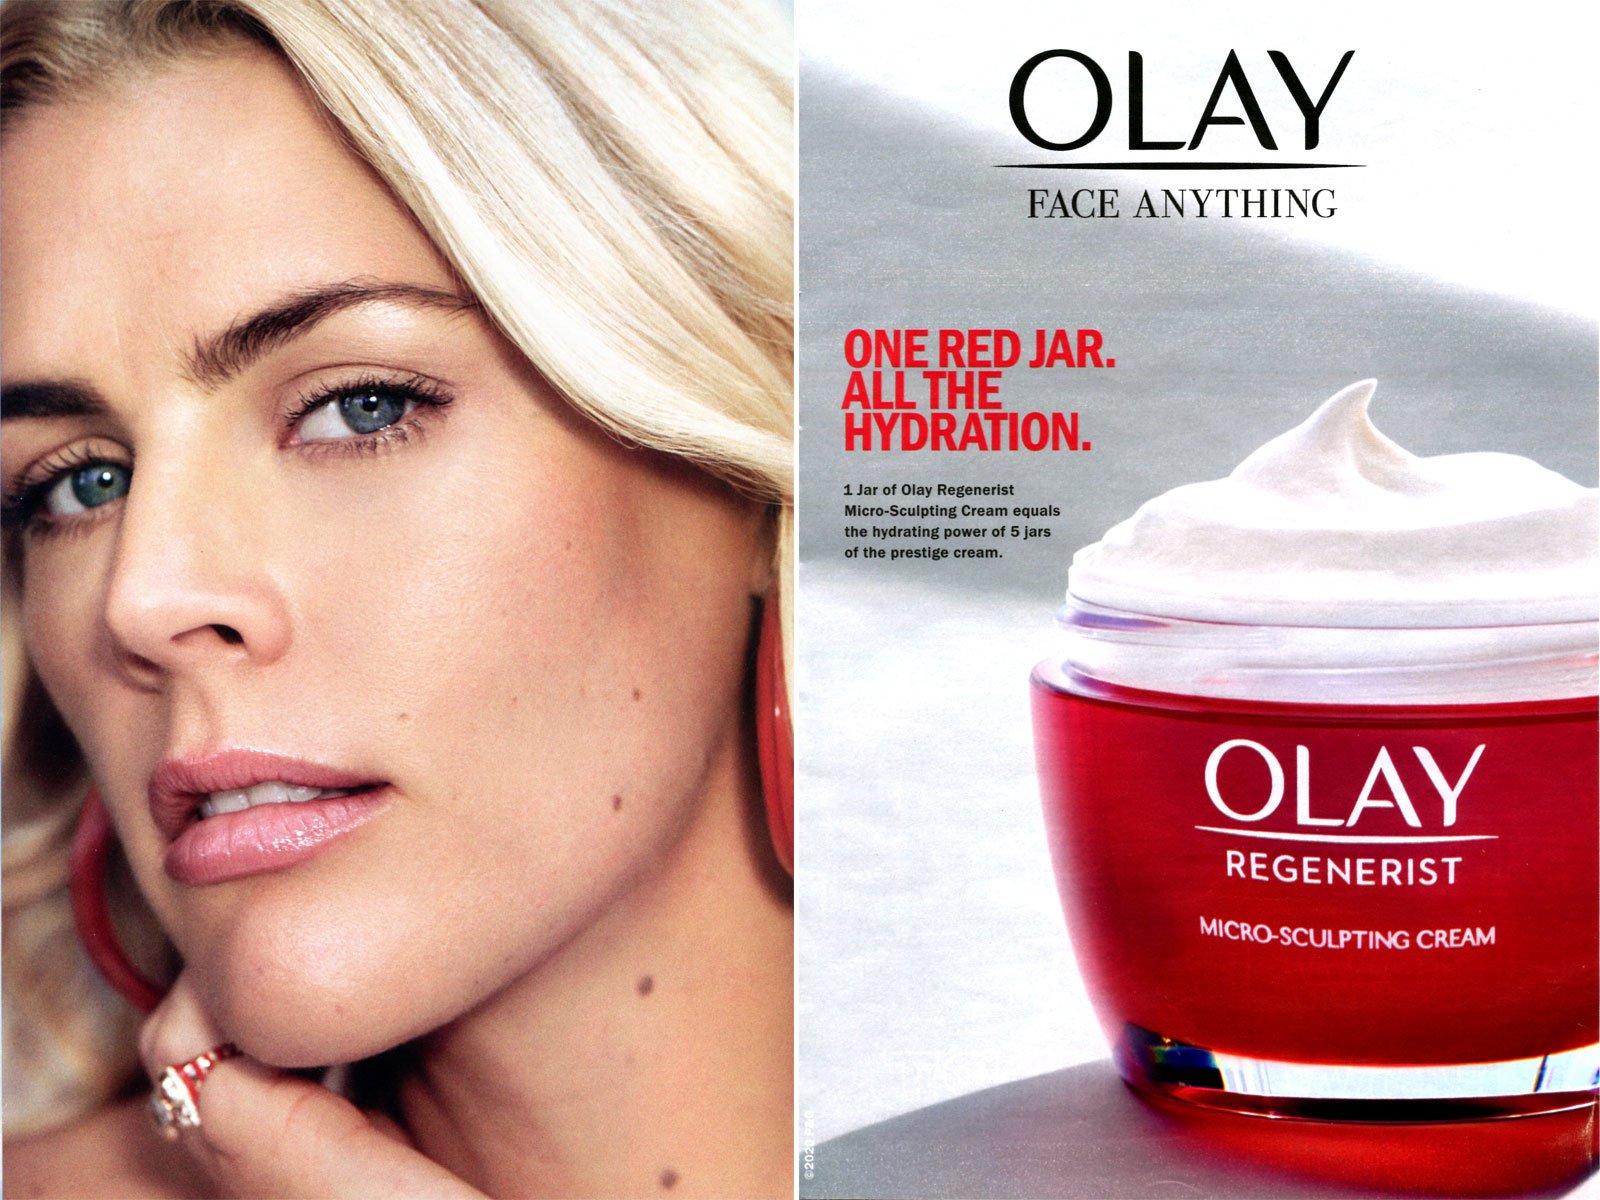 Busy Philipps for Olay Regenerist